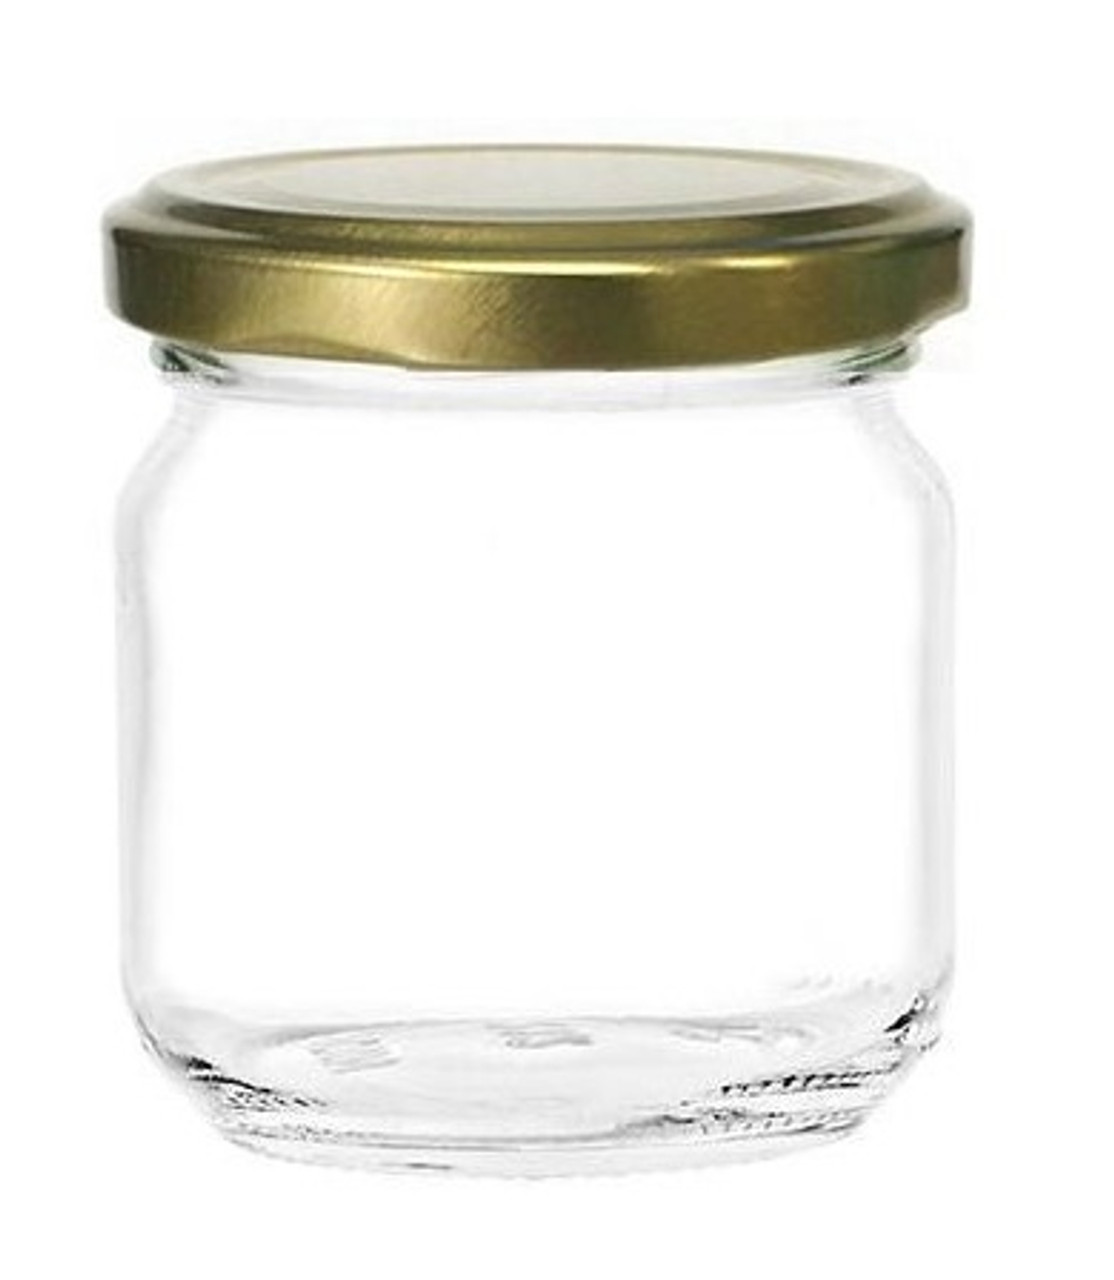 8 oz straight edge glass jar for sale with plastisol lined 66TW Gold Lid